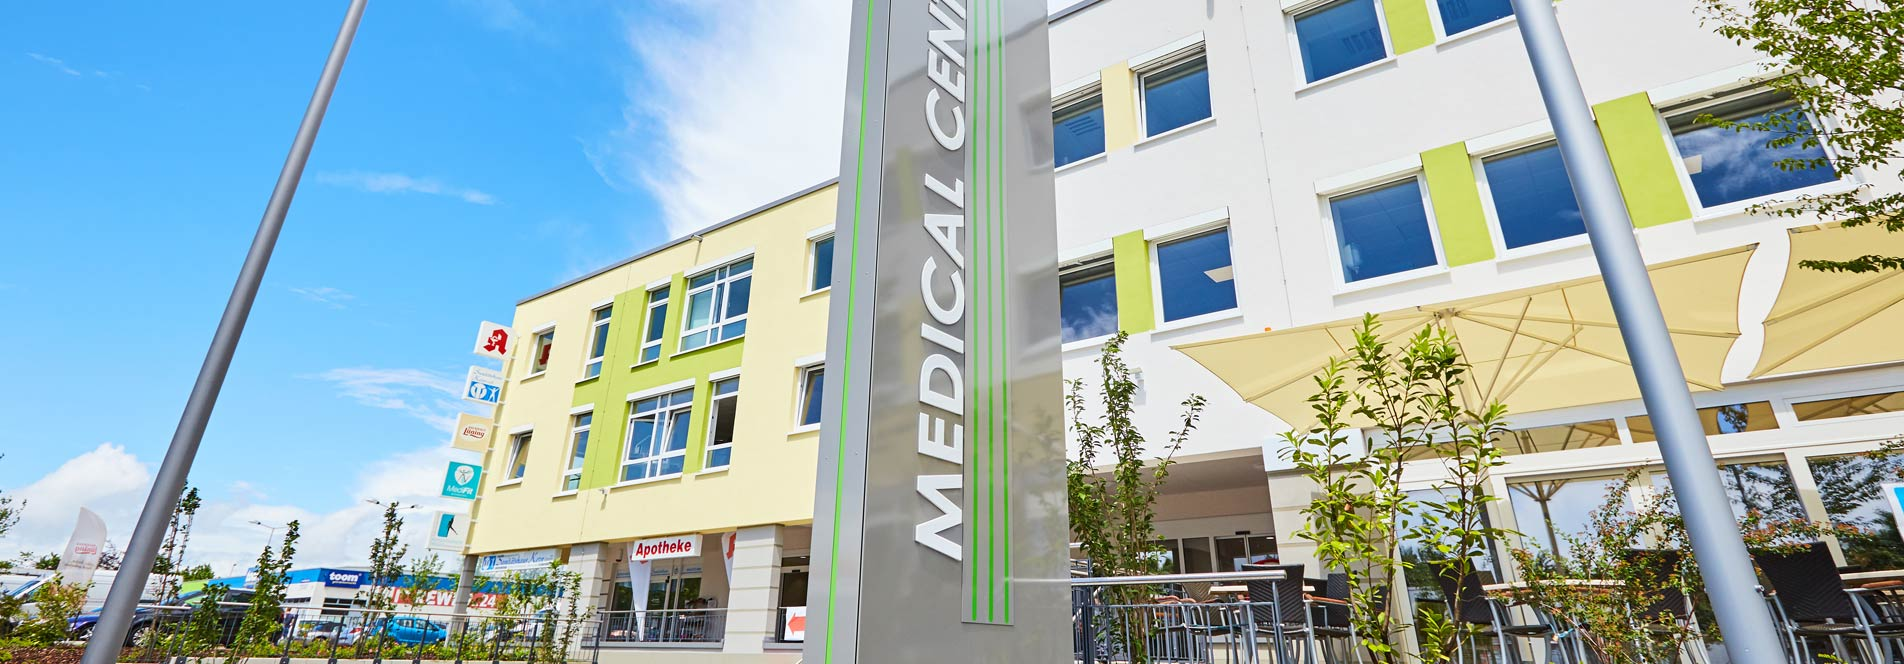 Medical Center Wiesbaden - Wissenswertes zum Medical Center 1